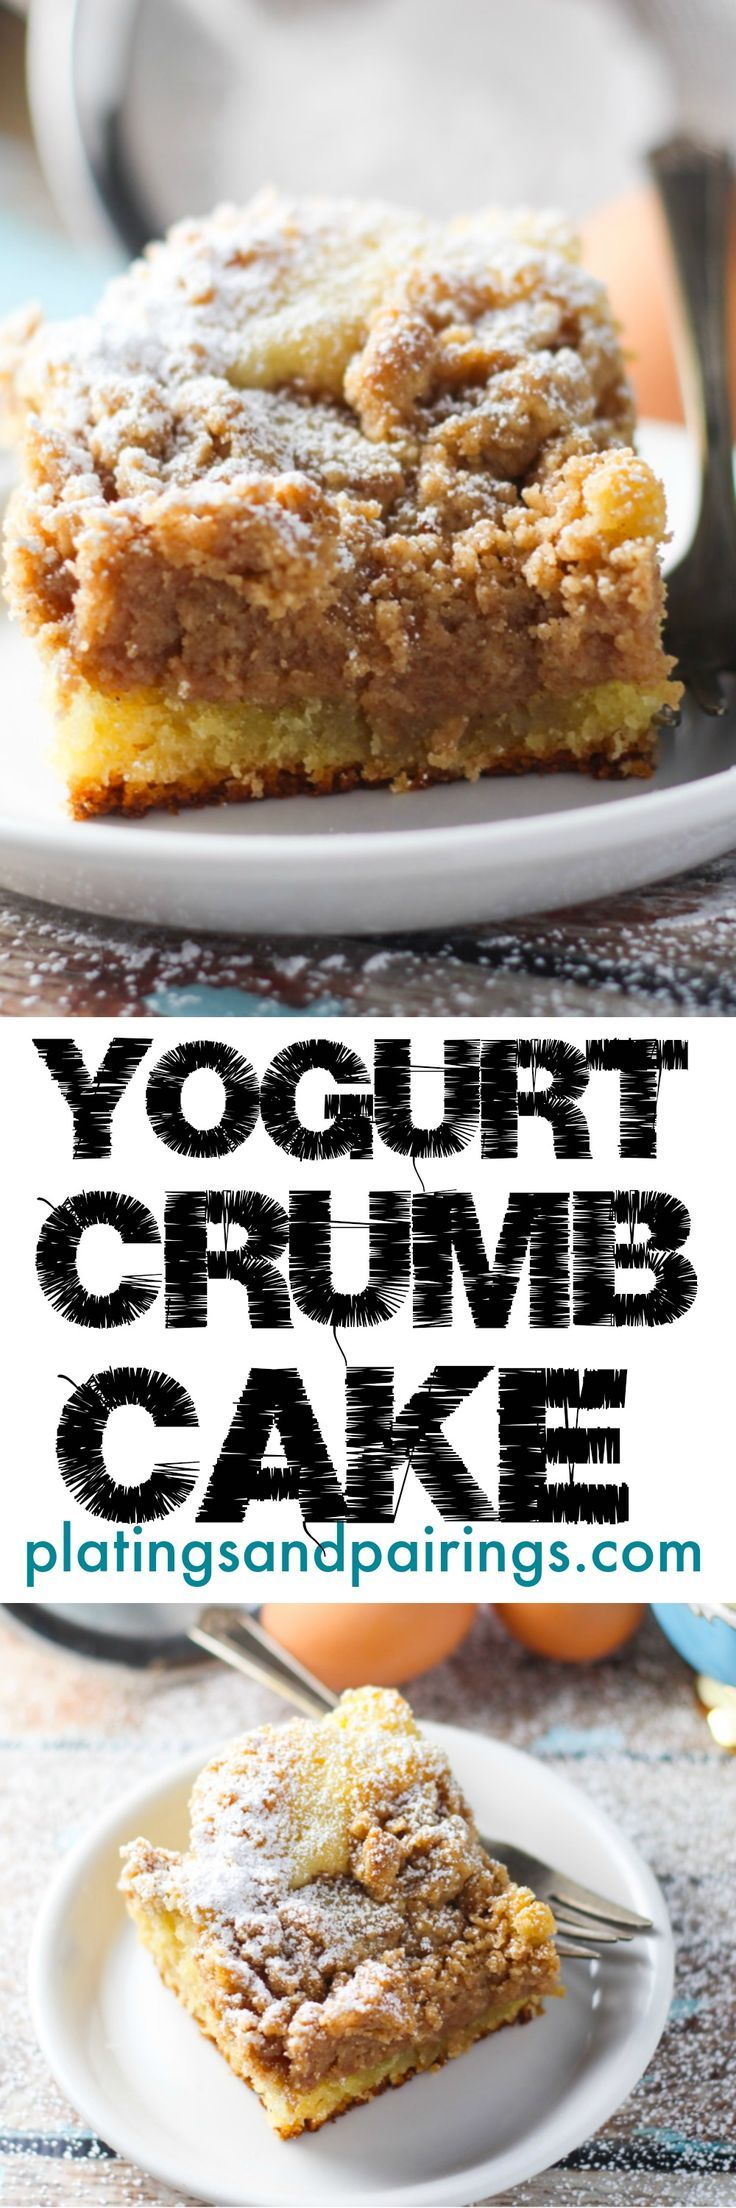 60% crumbs - 40% cake makes this AMAZING! Greek yogurt keeps it deliciously moist.